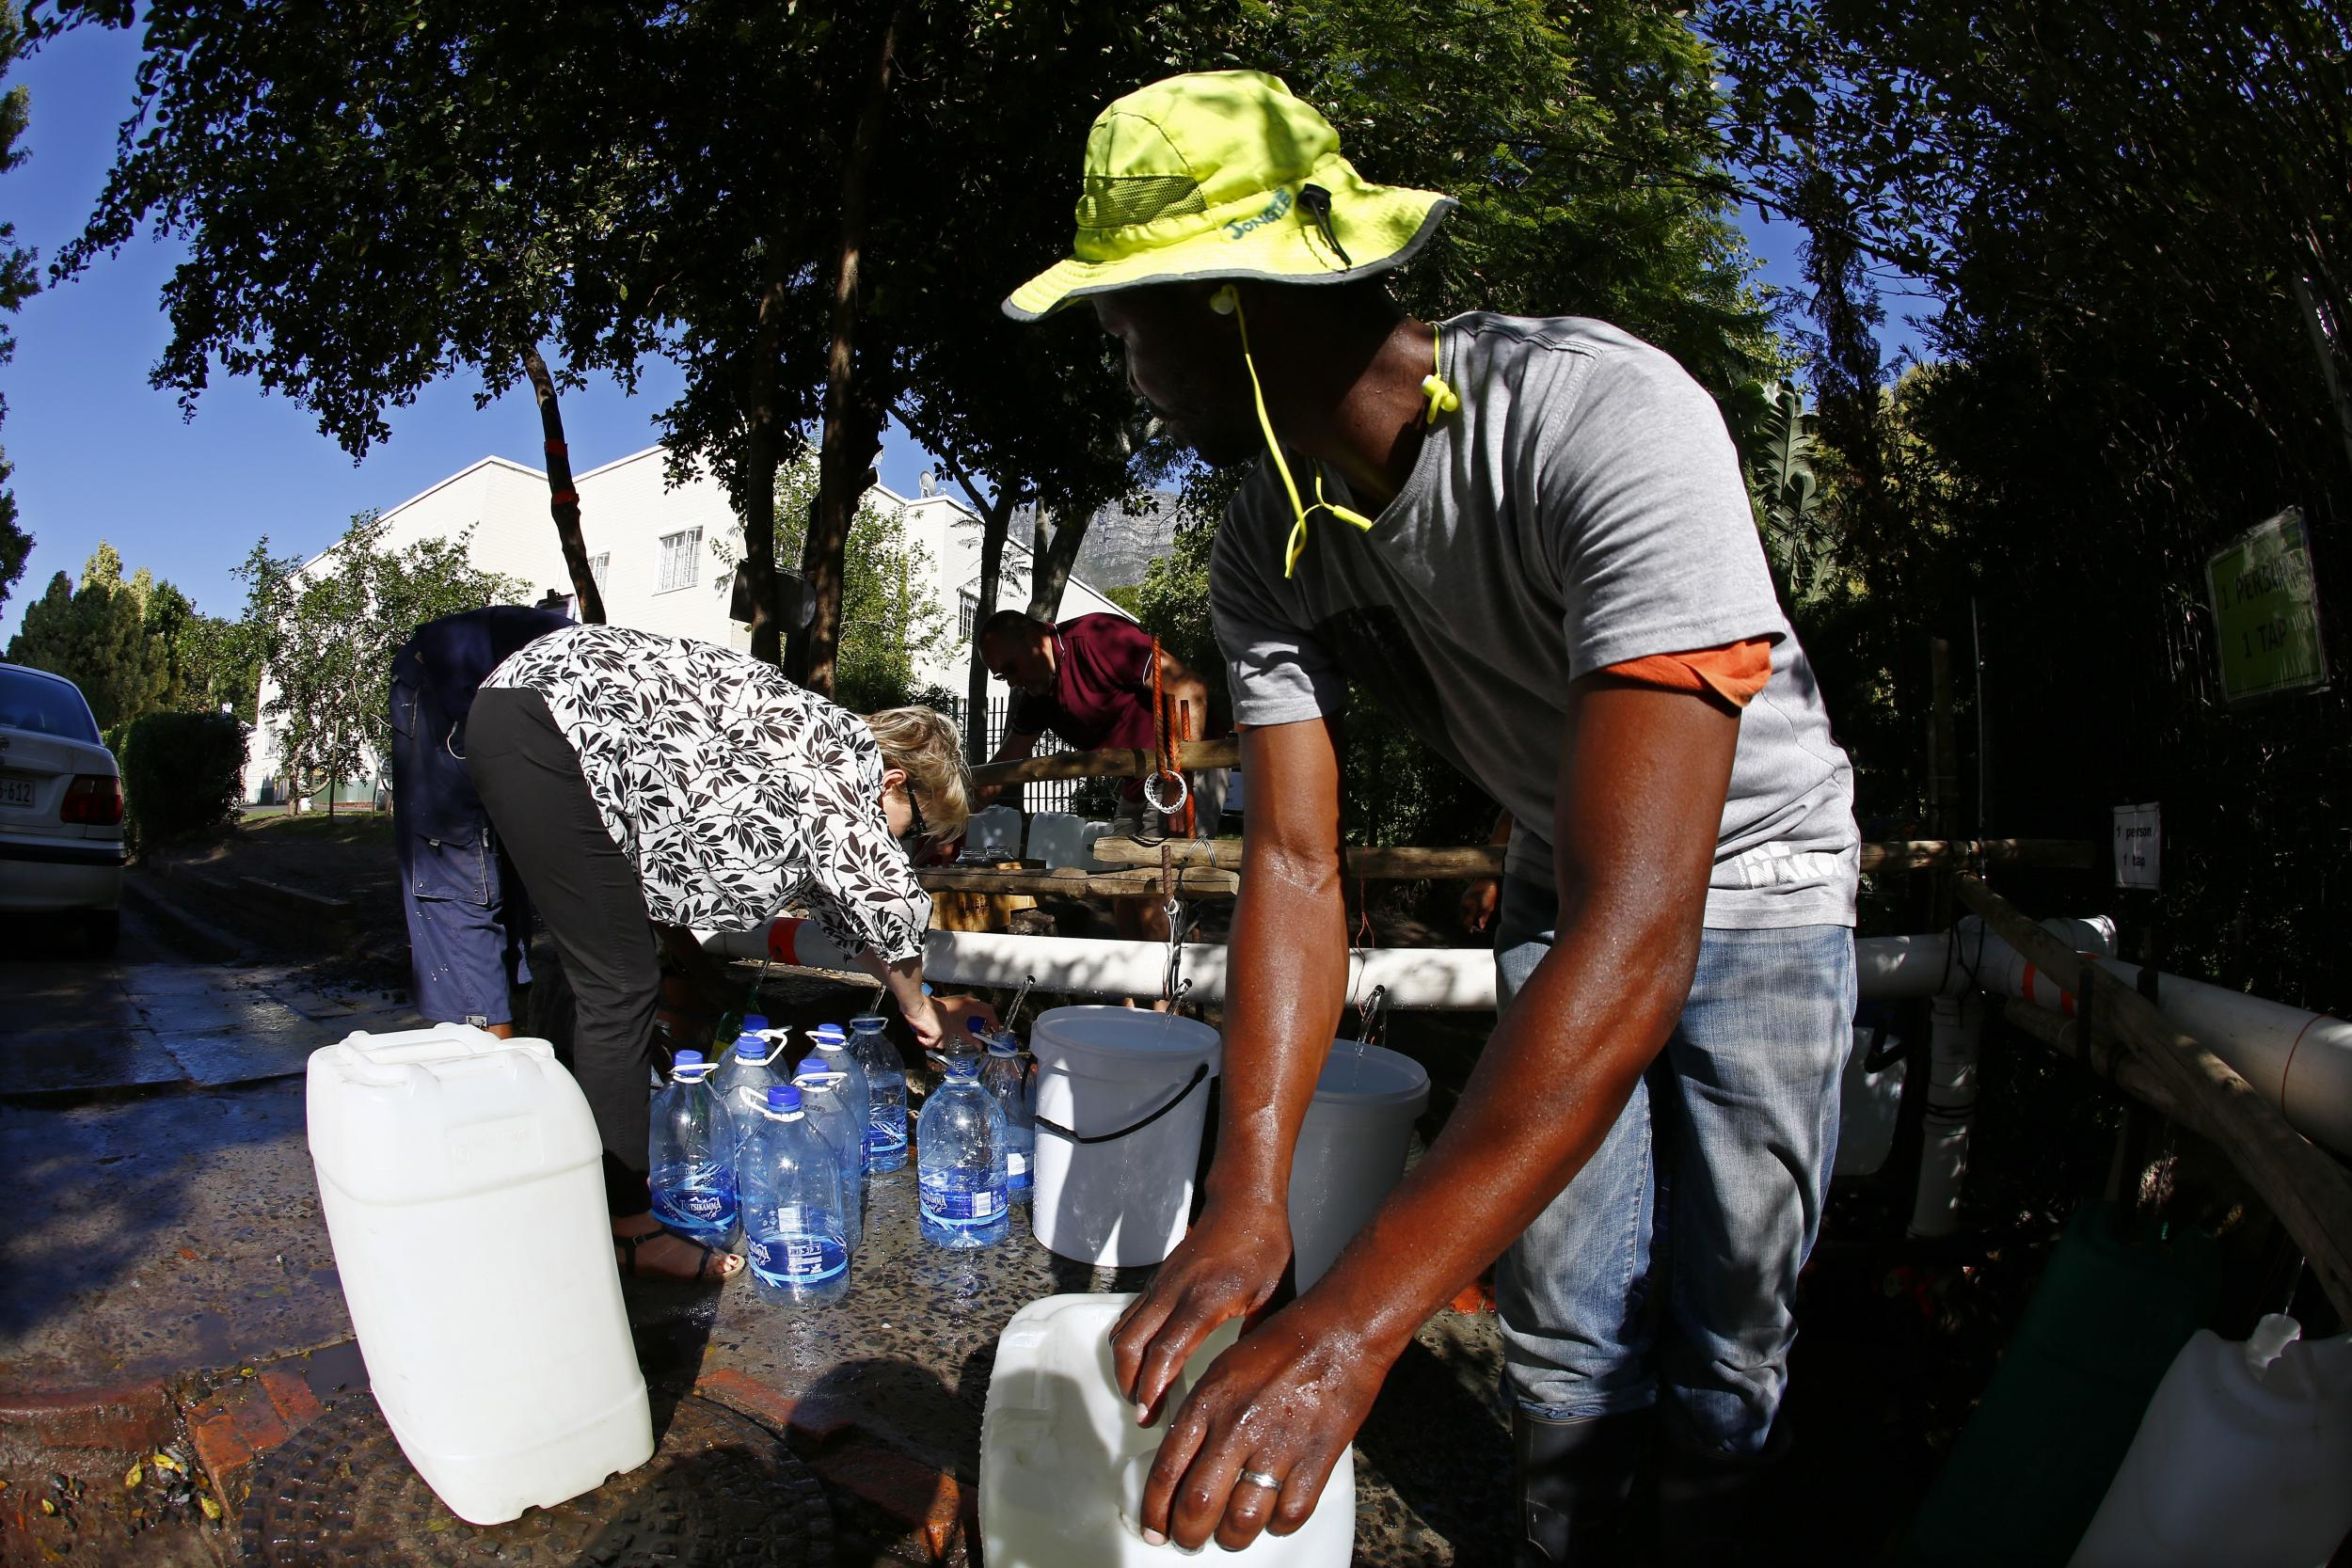 Cape Town drought: City beyond 'point of no return' and will run out of water in April, warns mayor